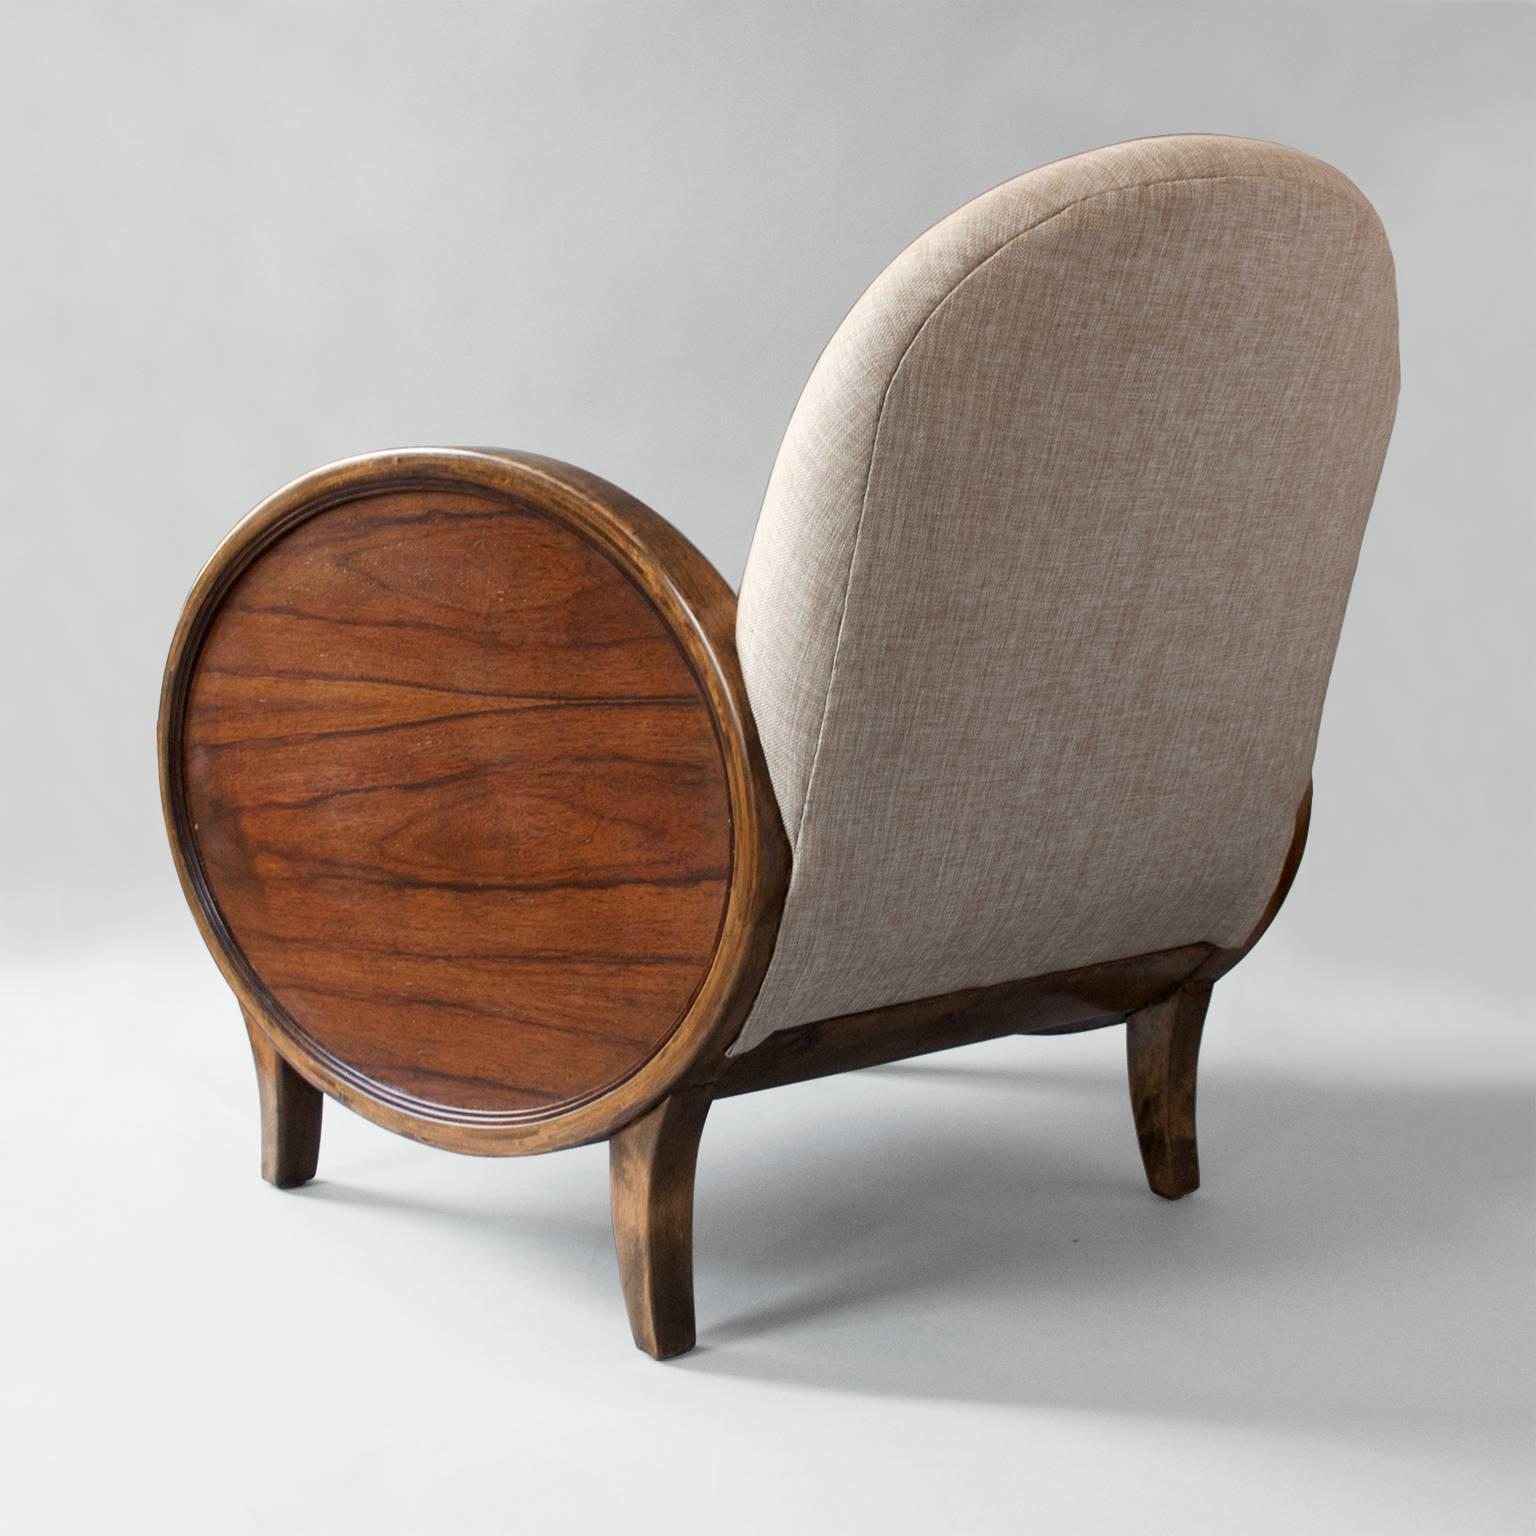 20th Century Scandinavian Modern Swedish Art Deco Chairs With Oval Rosewood  Panels For Sale